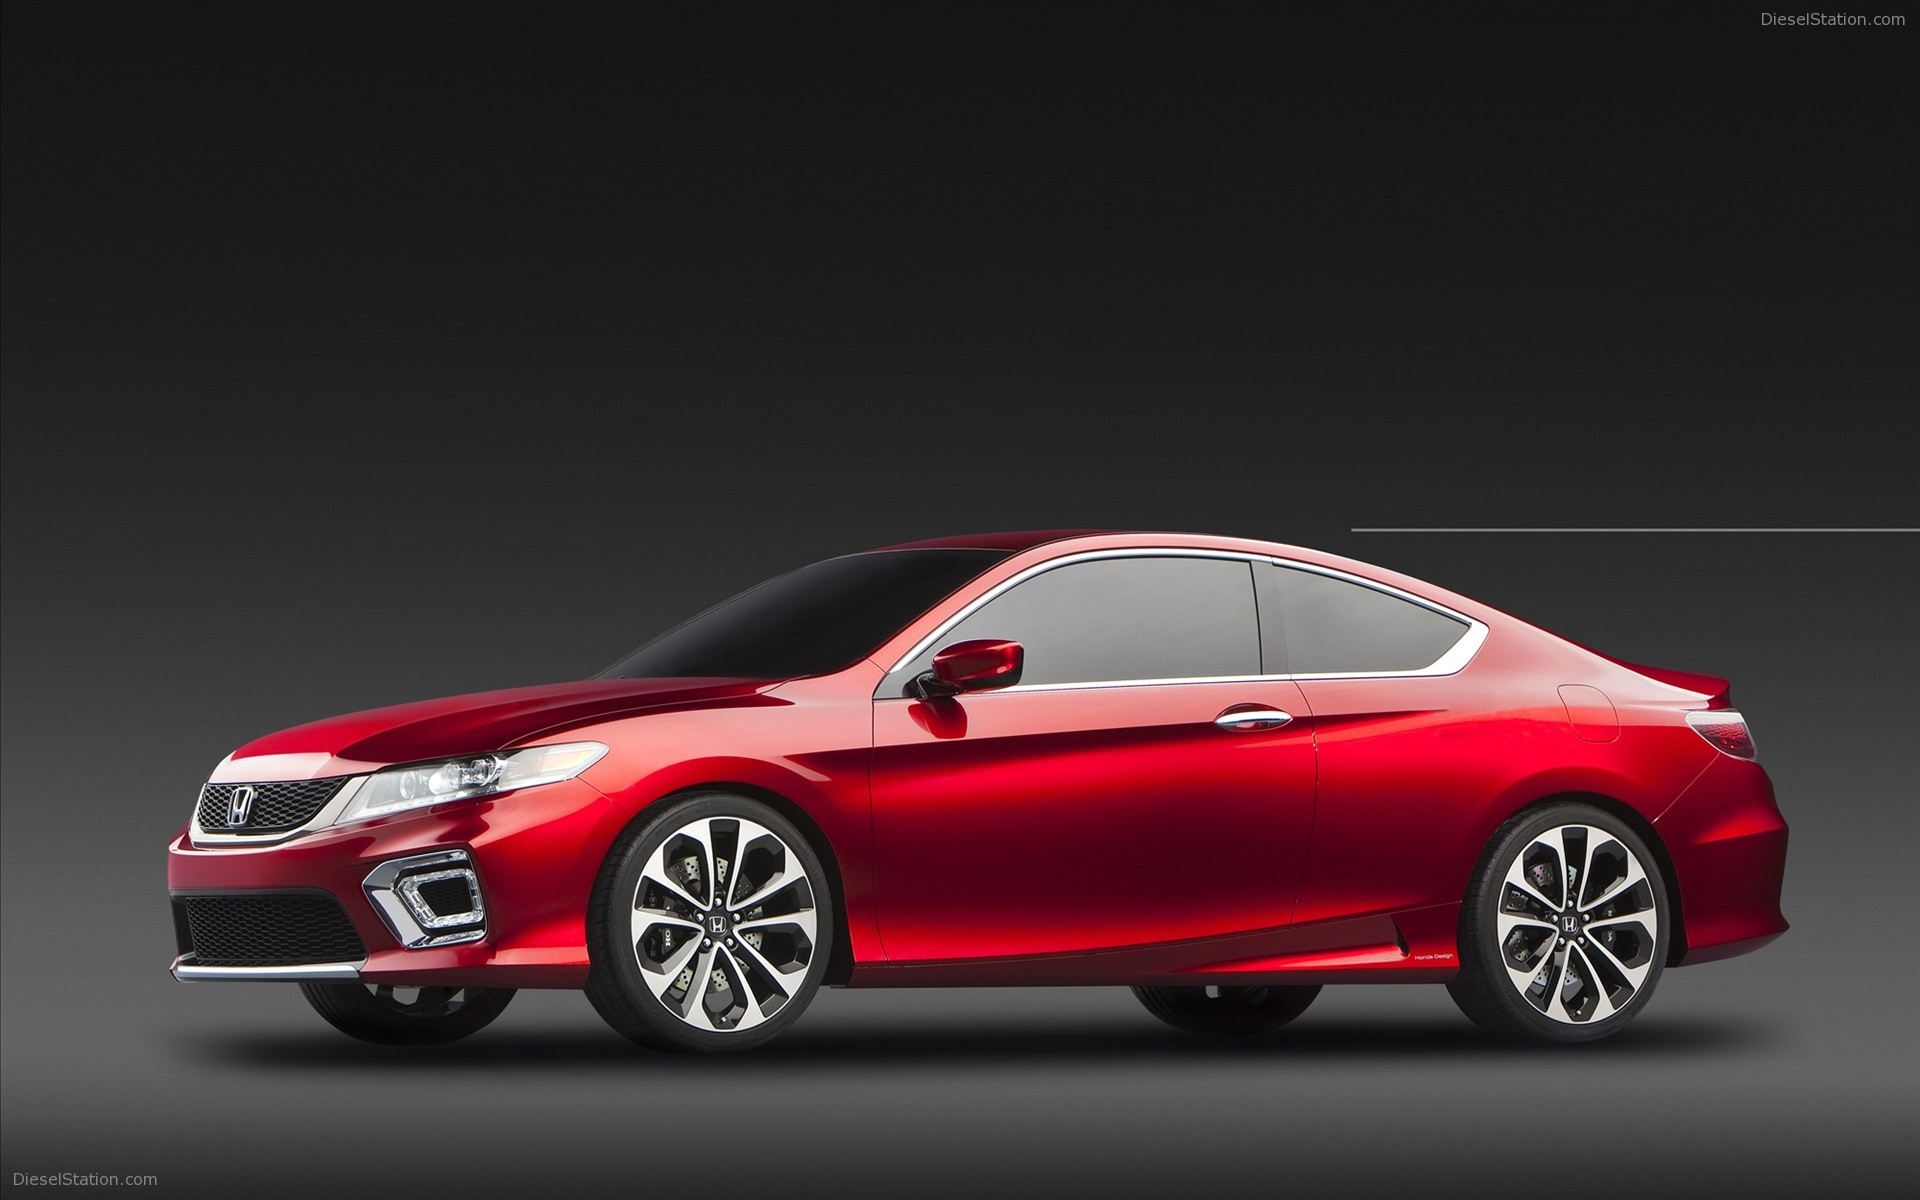 2017 Honda Accord Coupe Concept photo - 3